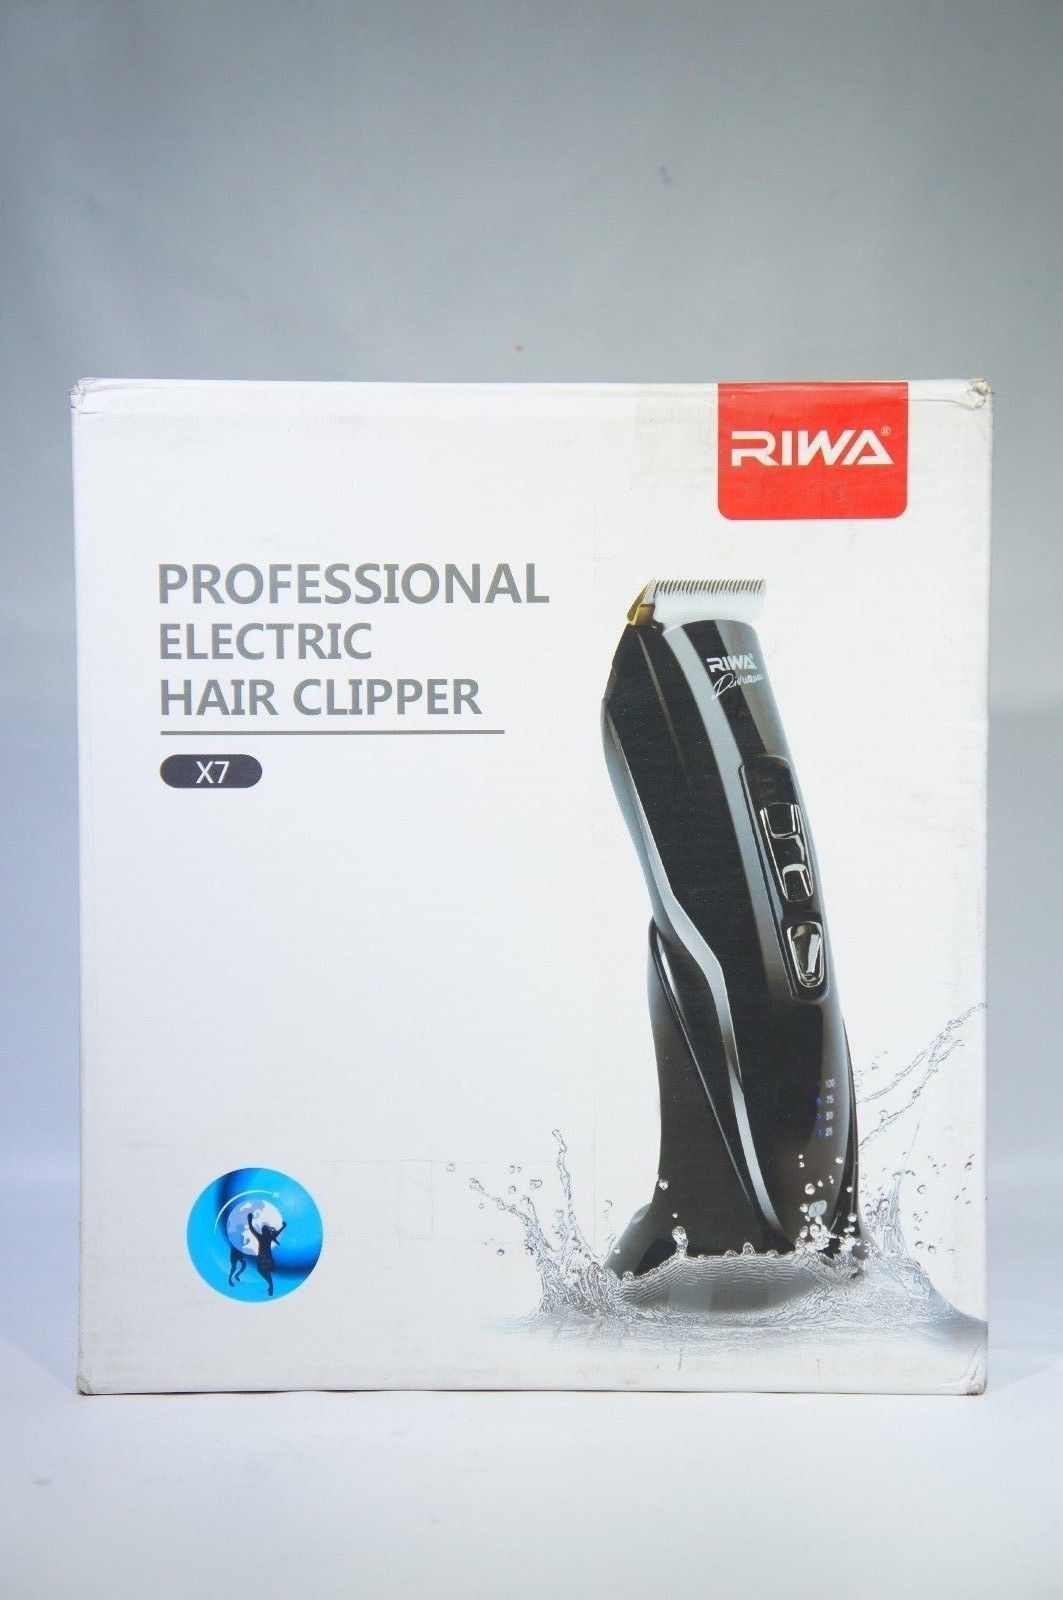 Riwa X7 Premium Cordless Charging Waterproof Hair/Beard Trimmer